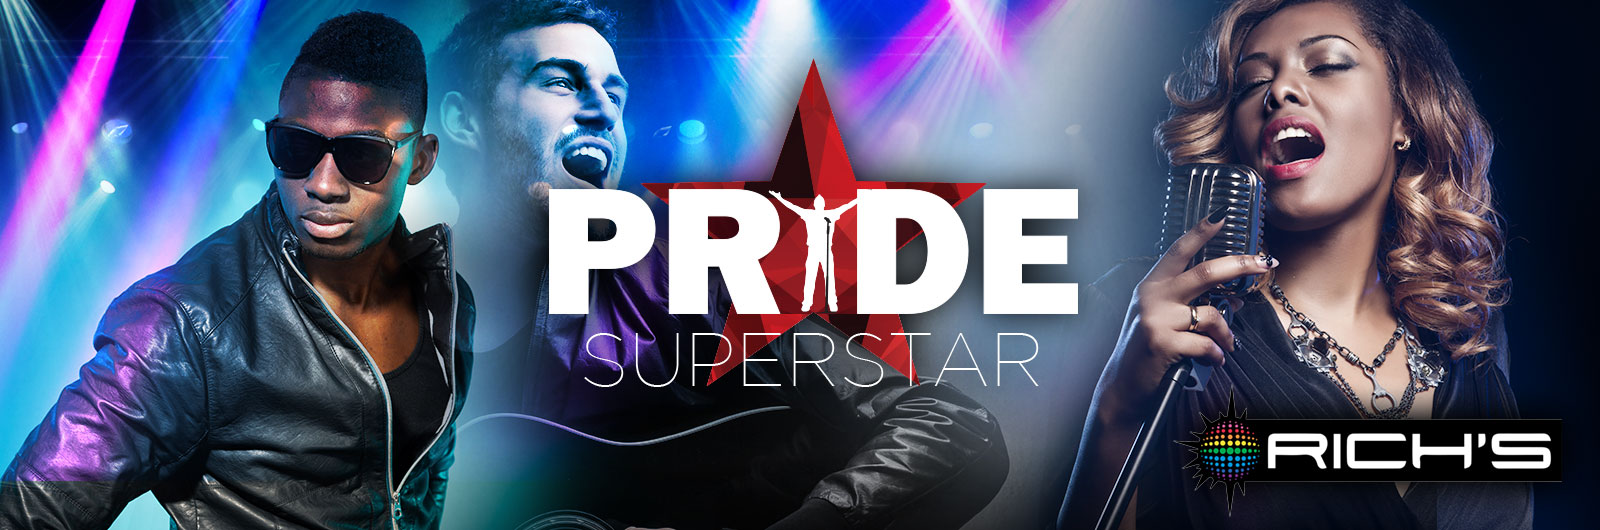 2018 Pride SuperStar